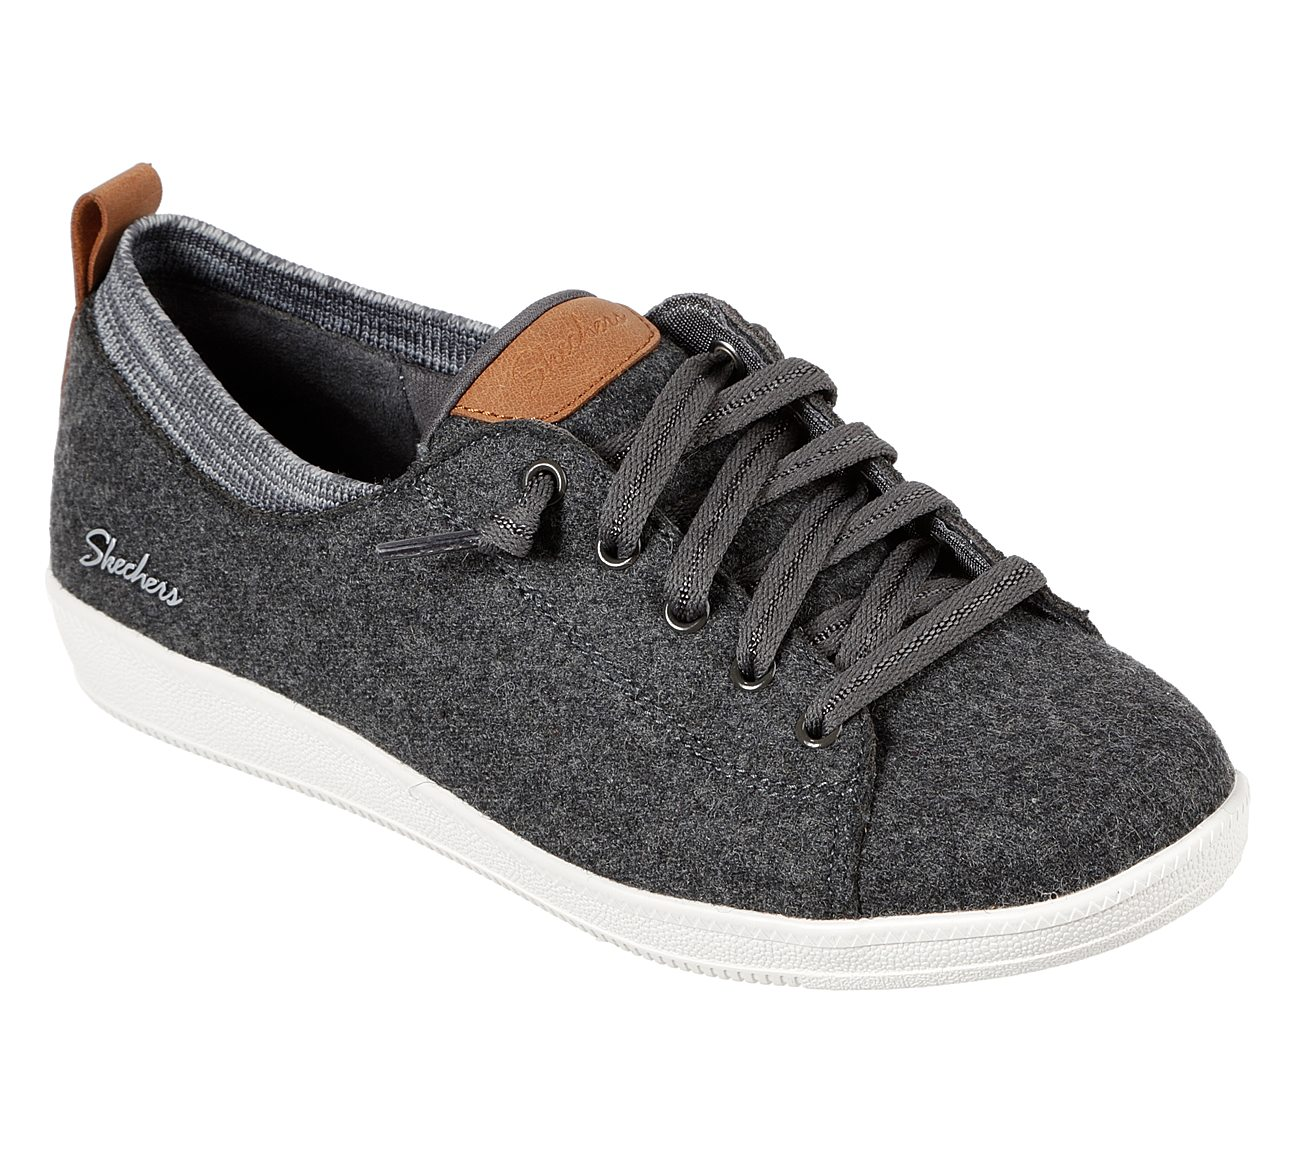 Buy SKECHERS Madison Ave - You're The